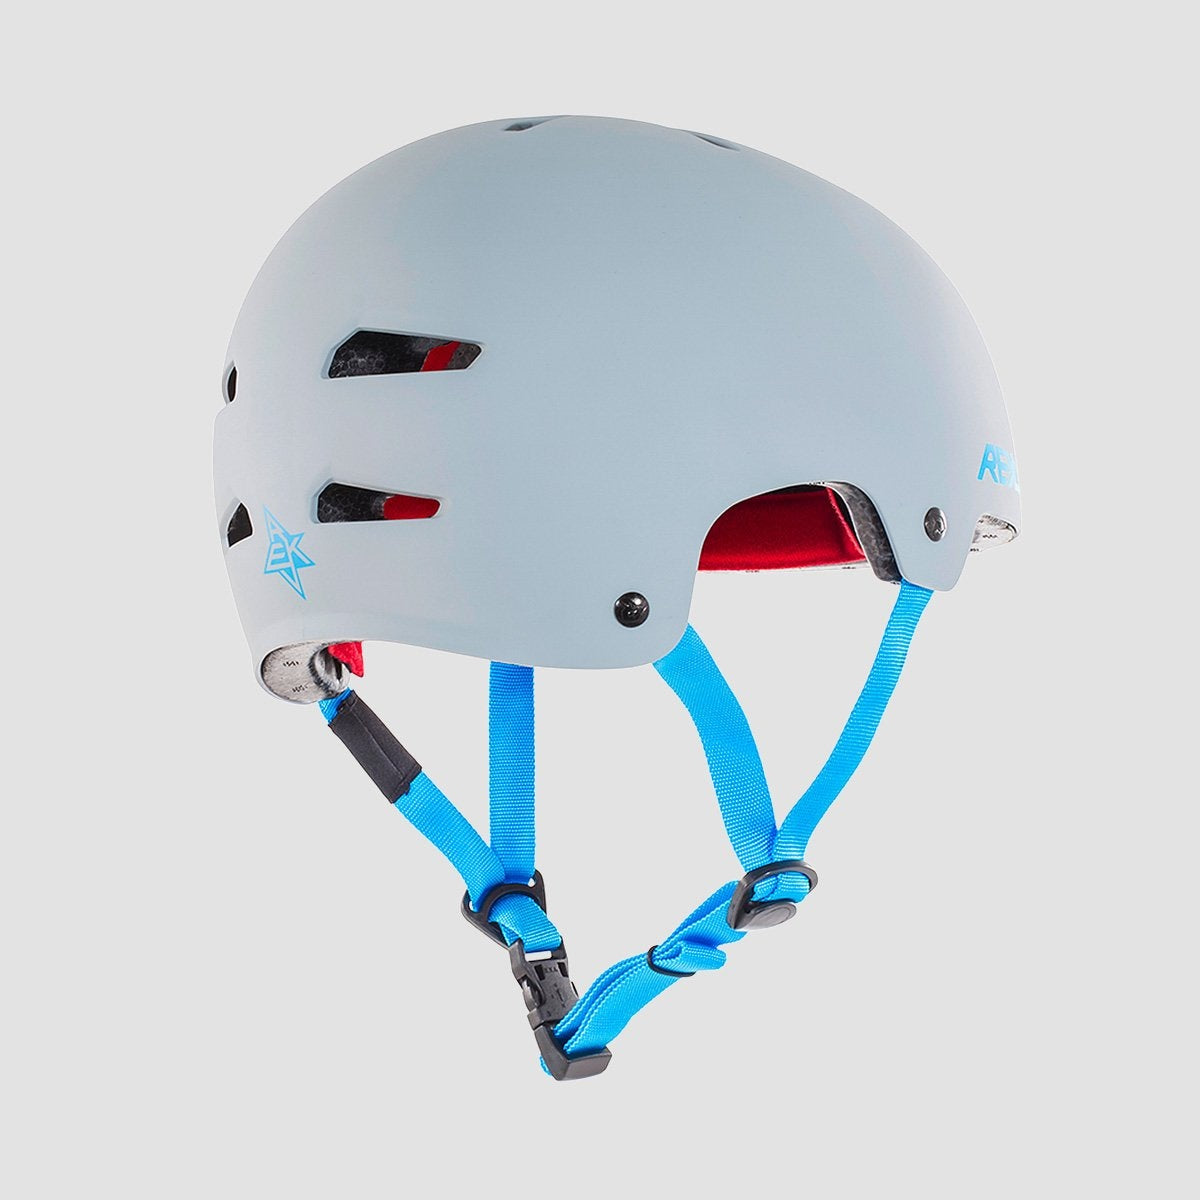 REKD Elite Helmet Grey/Blue - Safety Gear